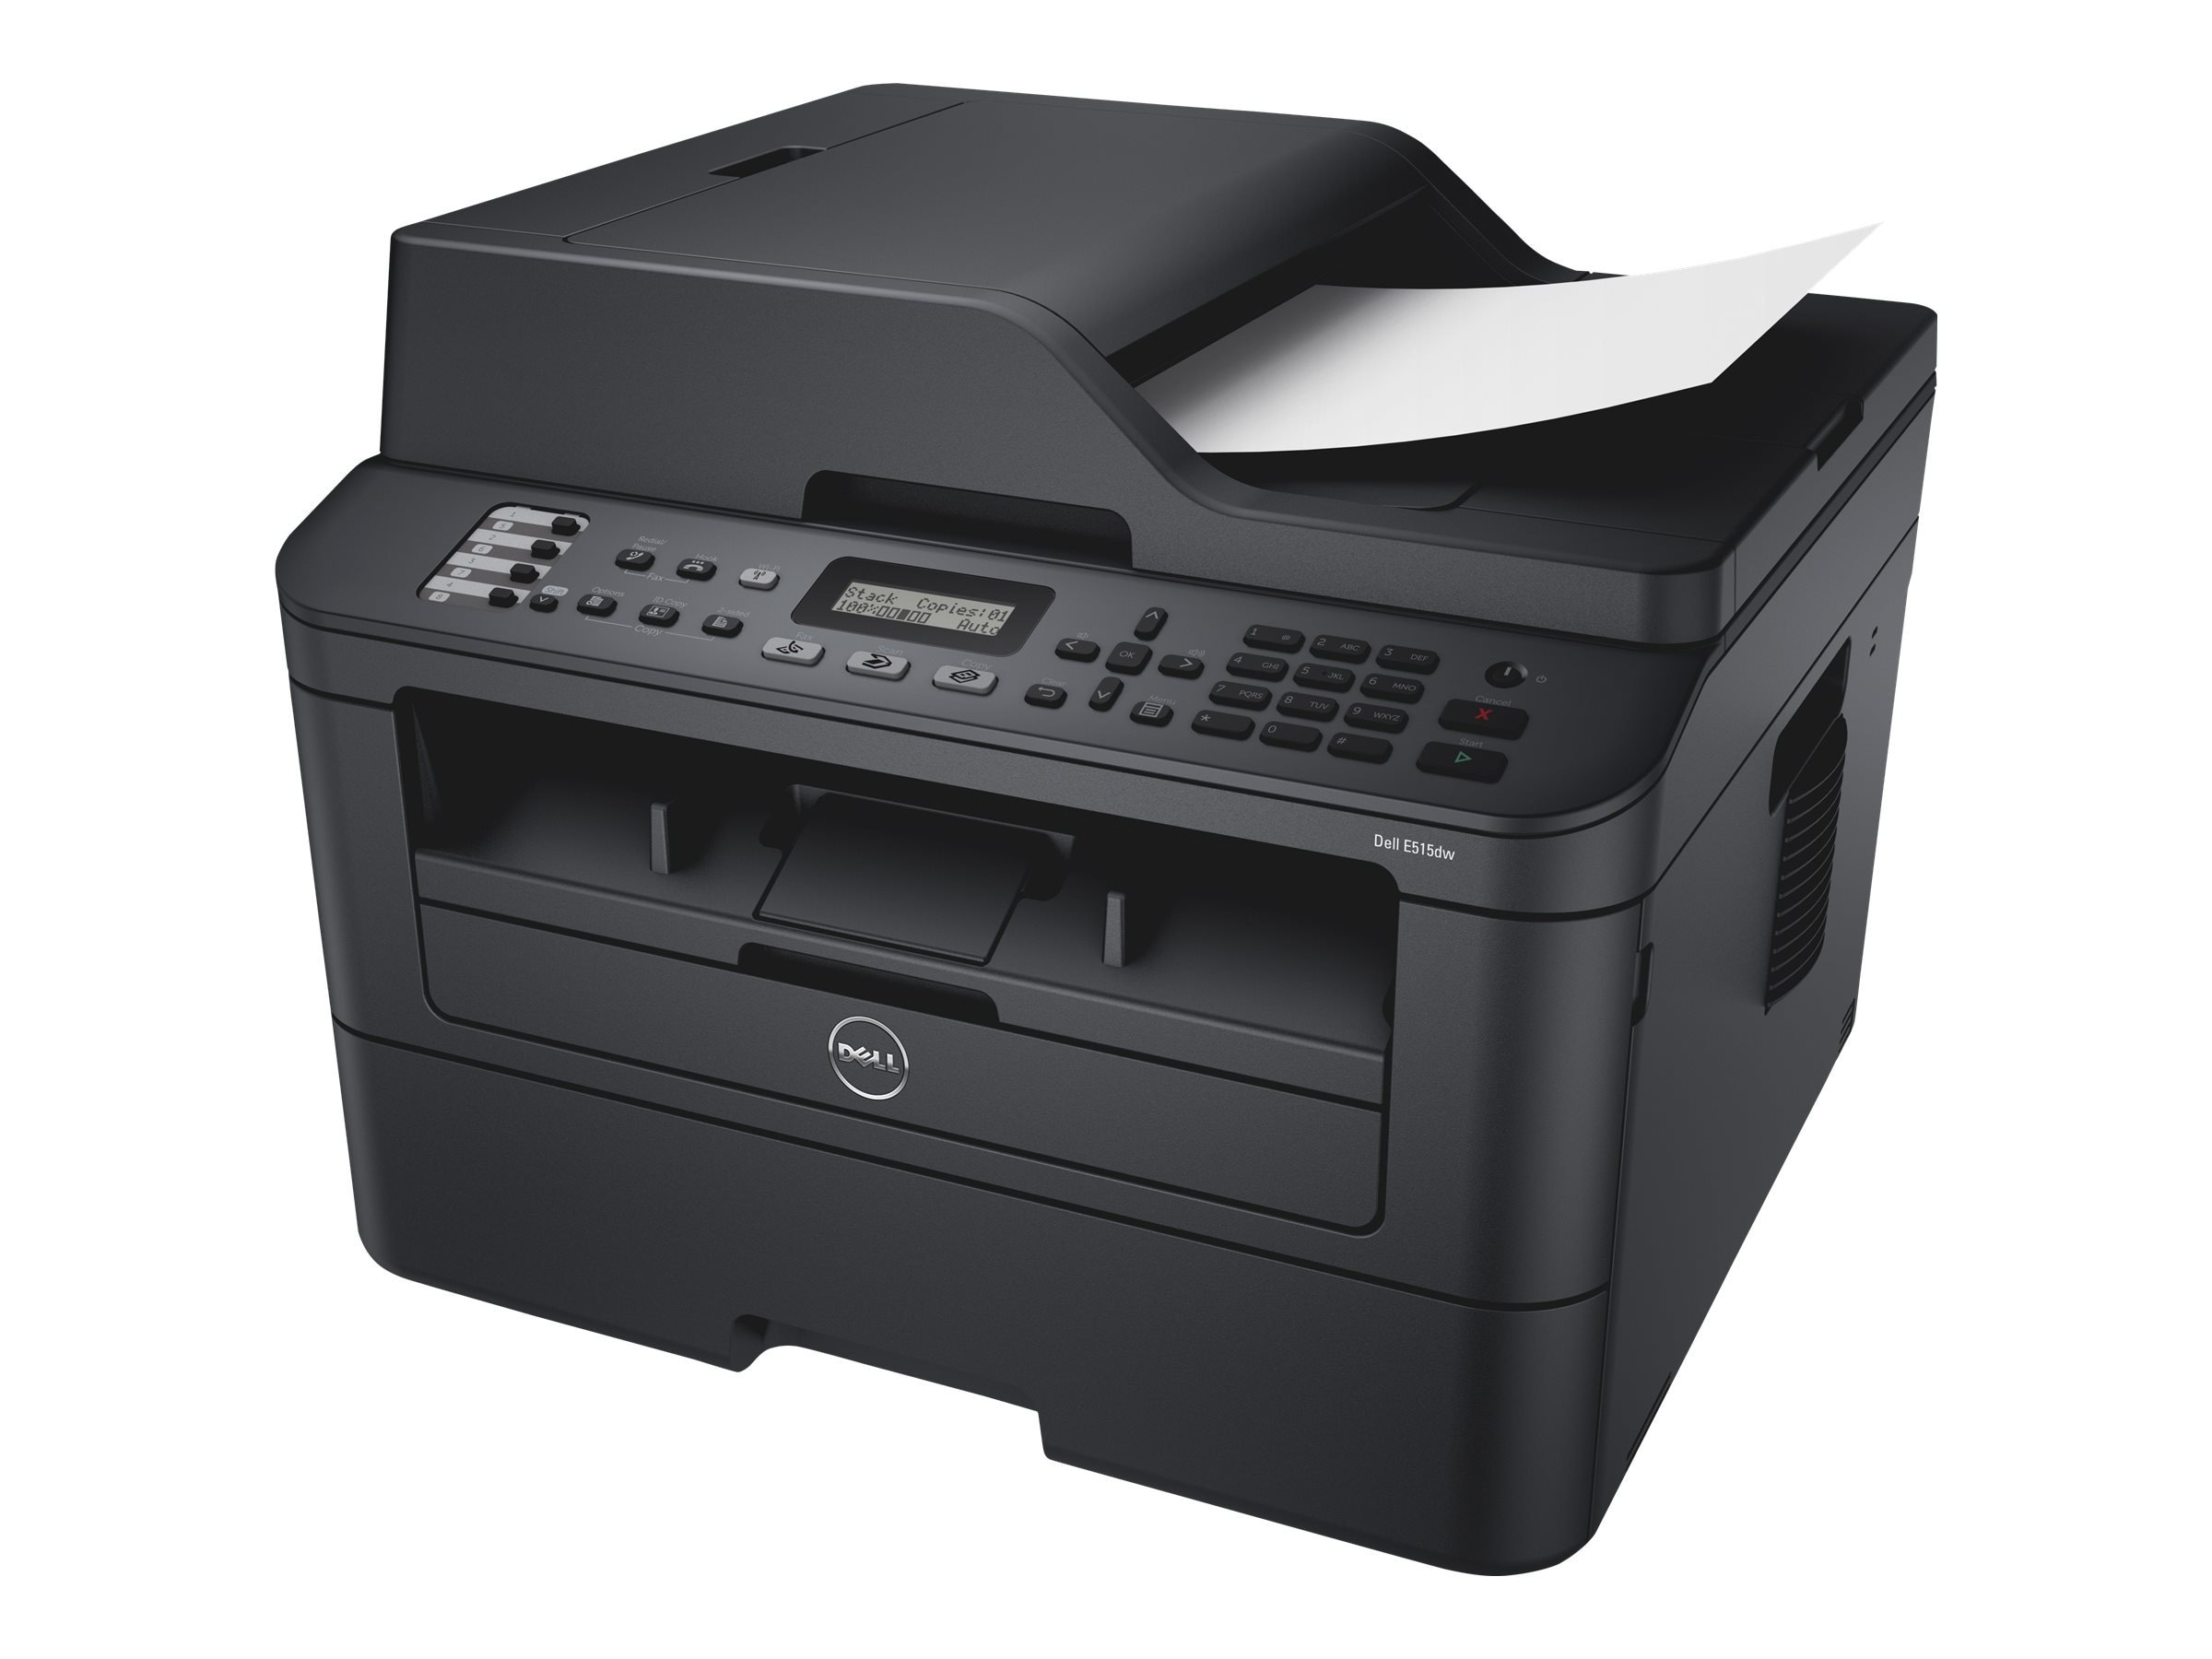 Dell E515dw Black & White Laser Multifunction Printer (210-AEHK)